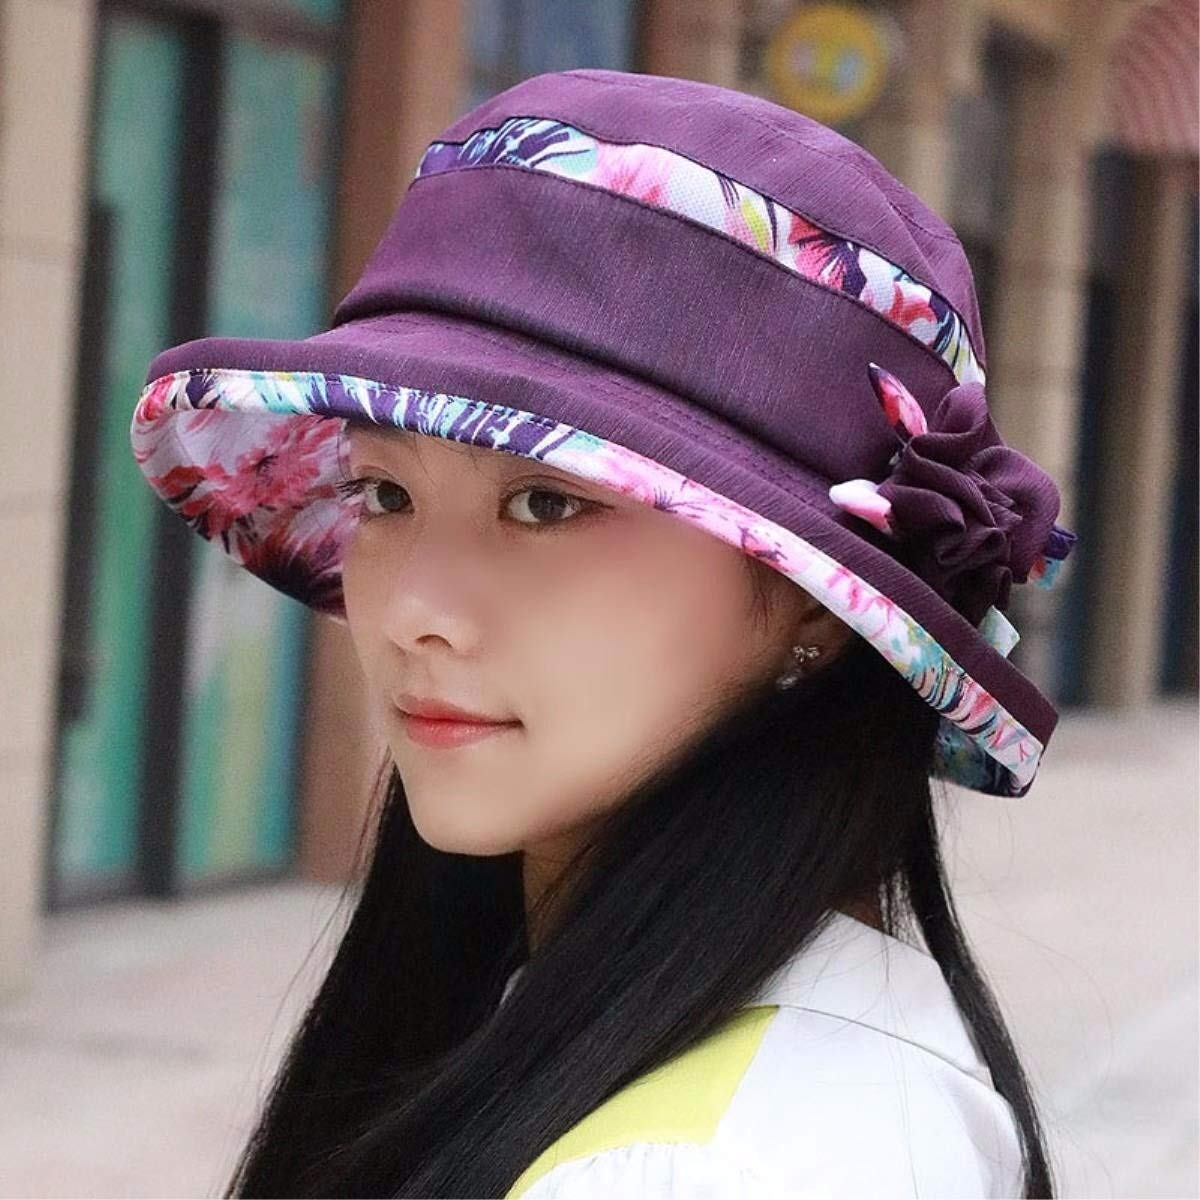 Lutingstore Cotton Hat, Floral Printed Cap with Brim for Vacation Summer Beach (Color : A, Size : M) by Lutingstore